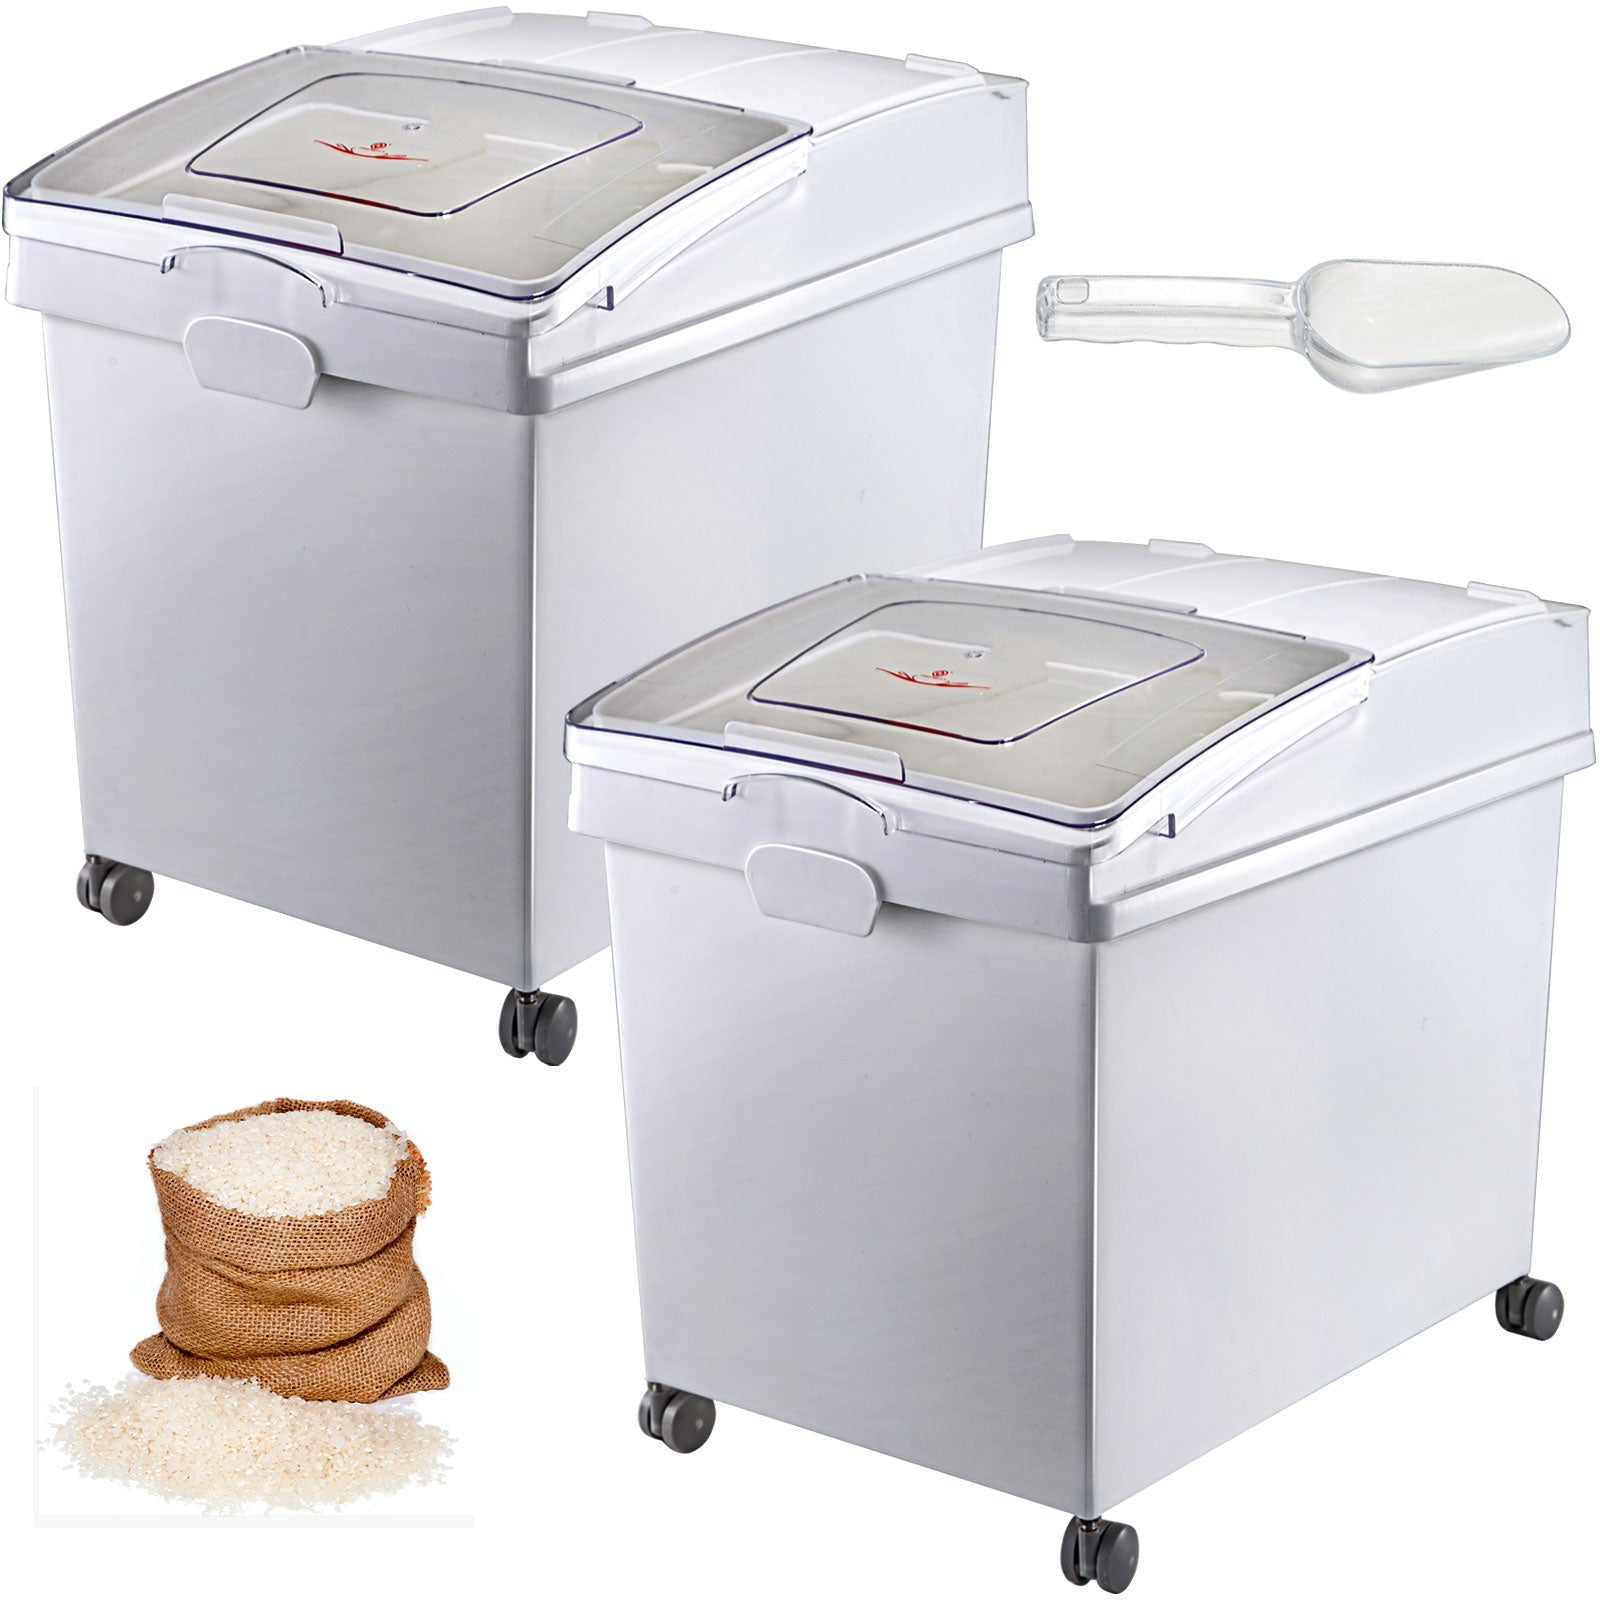 2 Pack Ingredient Bin With Casters 10.5 Gal Mobile Restaurant Kitchen Flour Bins